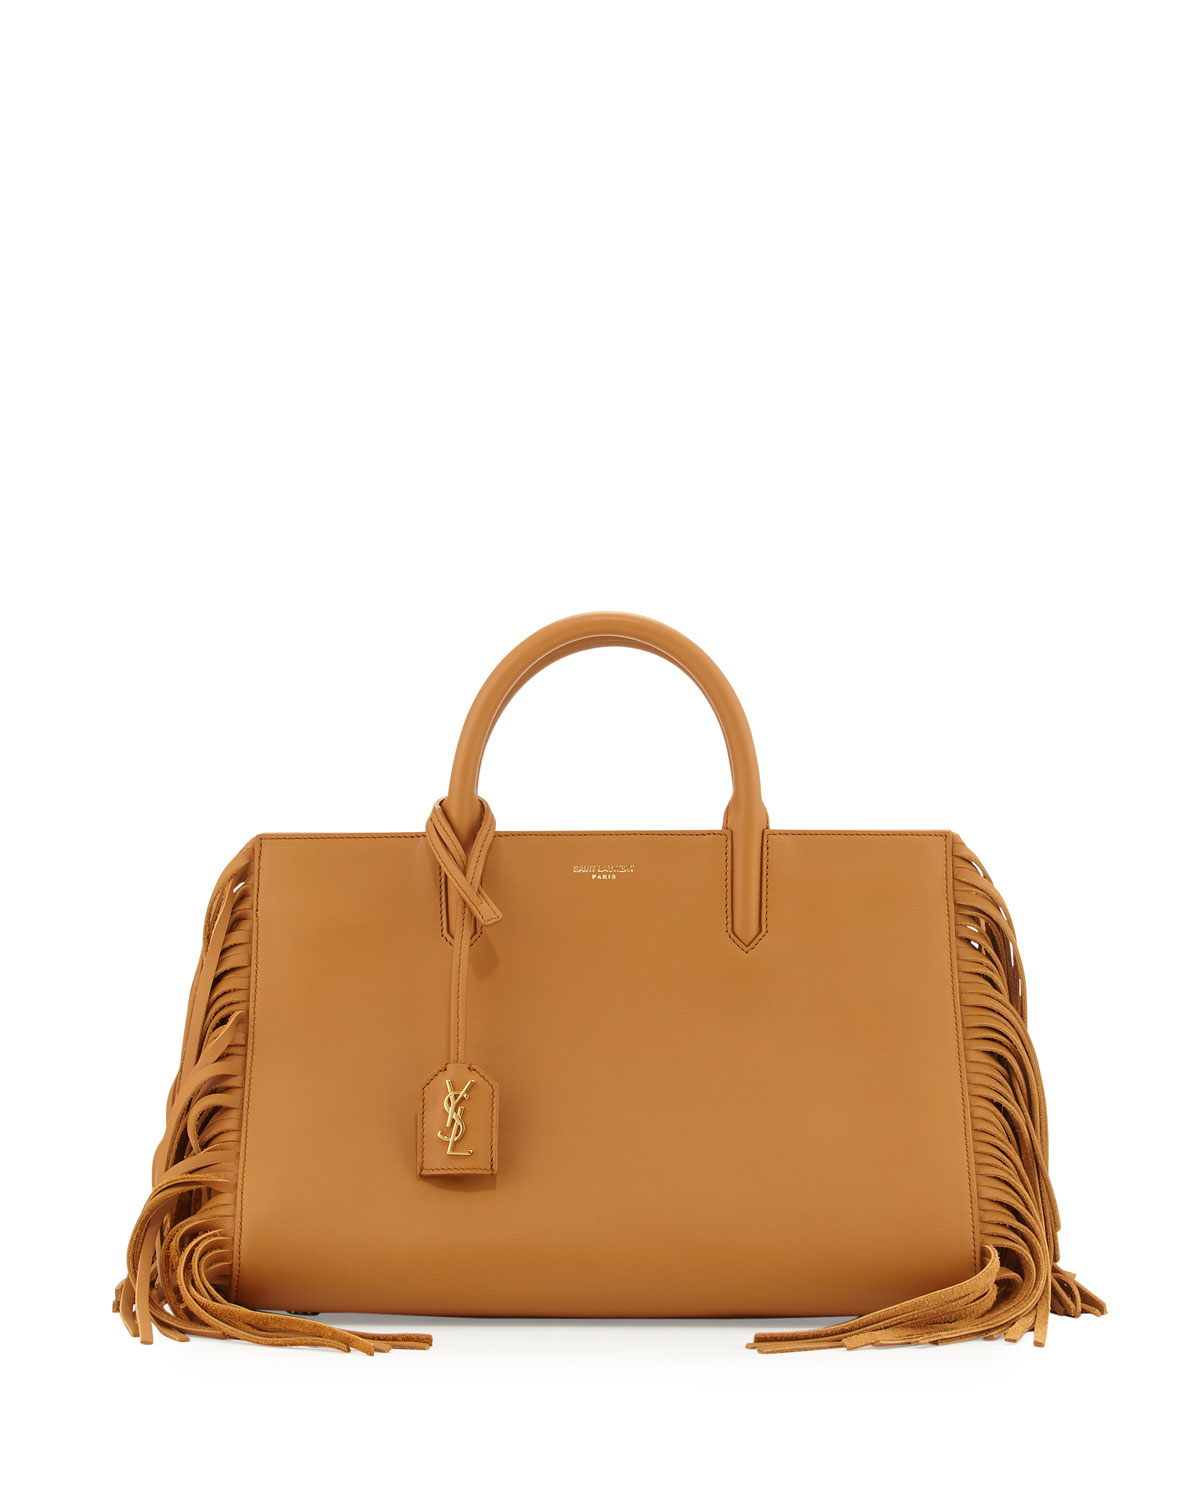 a93eea3c41 Gallery. Previously sold at  Bergdorf Goodman · Women s Fringed Bags ...